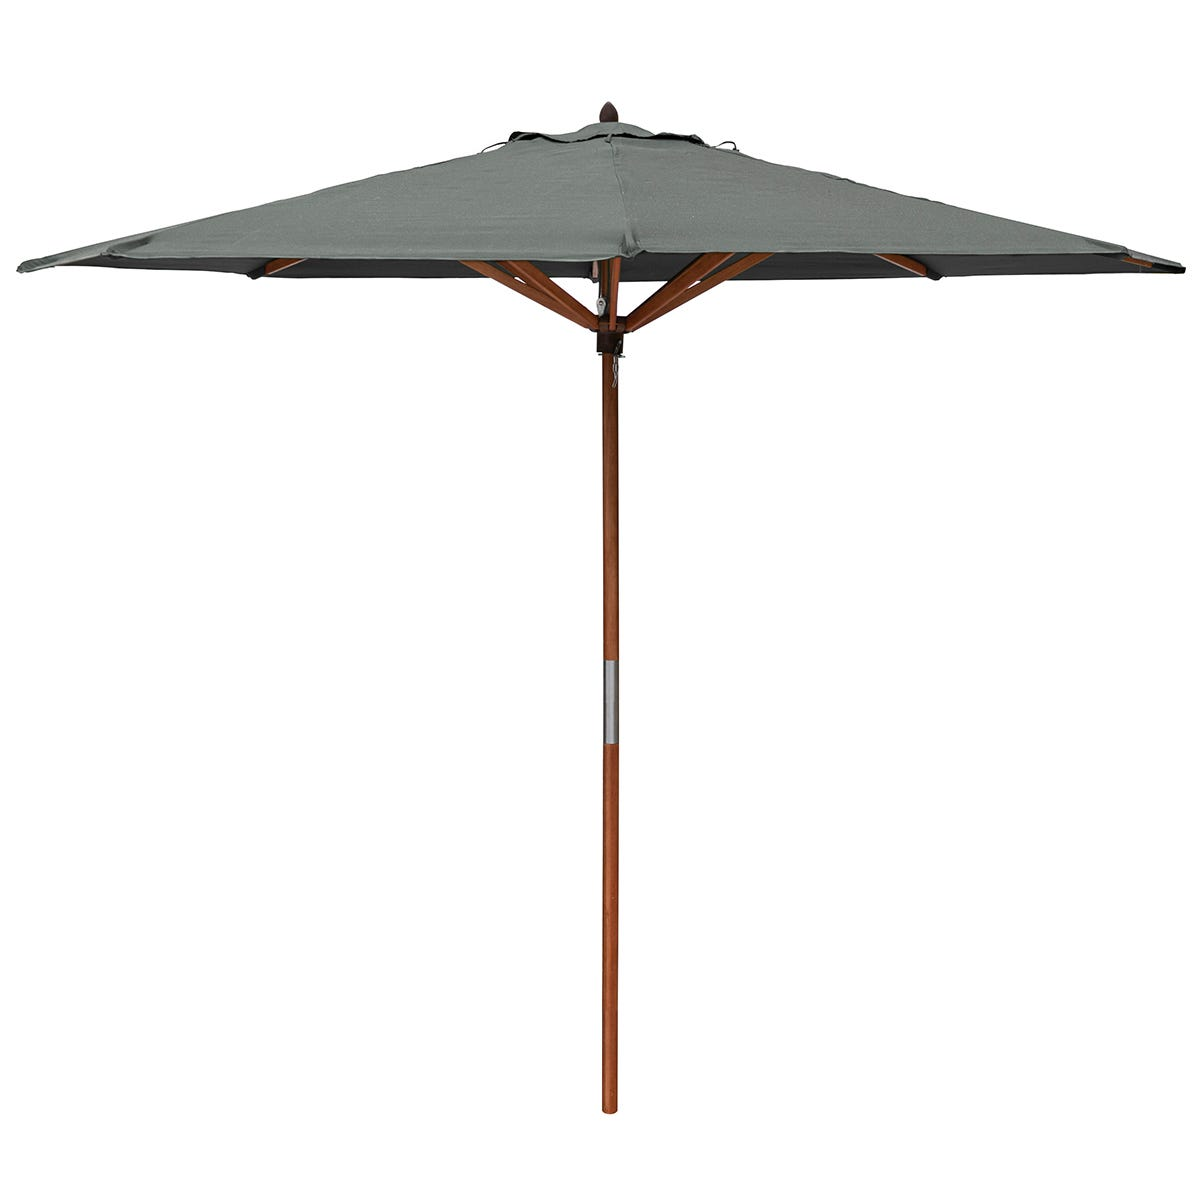 Rowlinson Willington 2.7m Wooden Parasol (base not included) - Grey